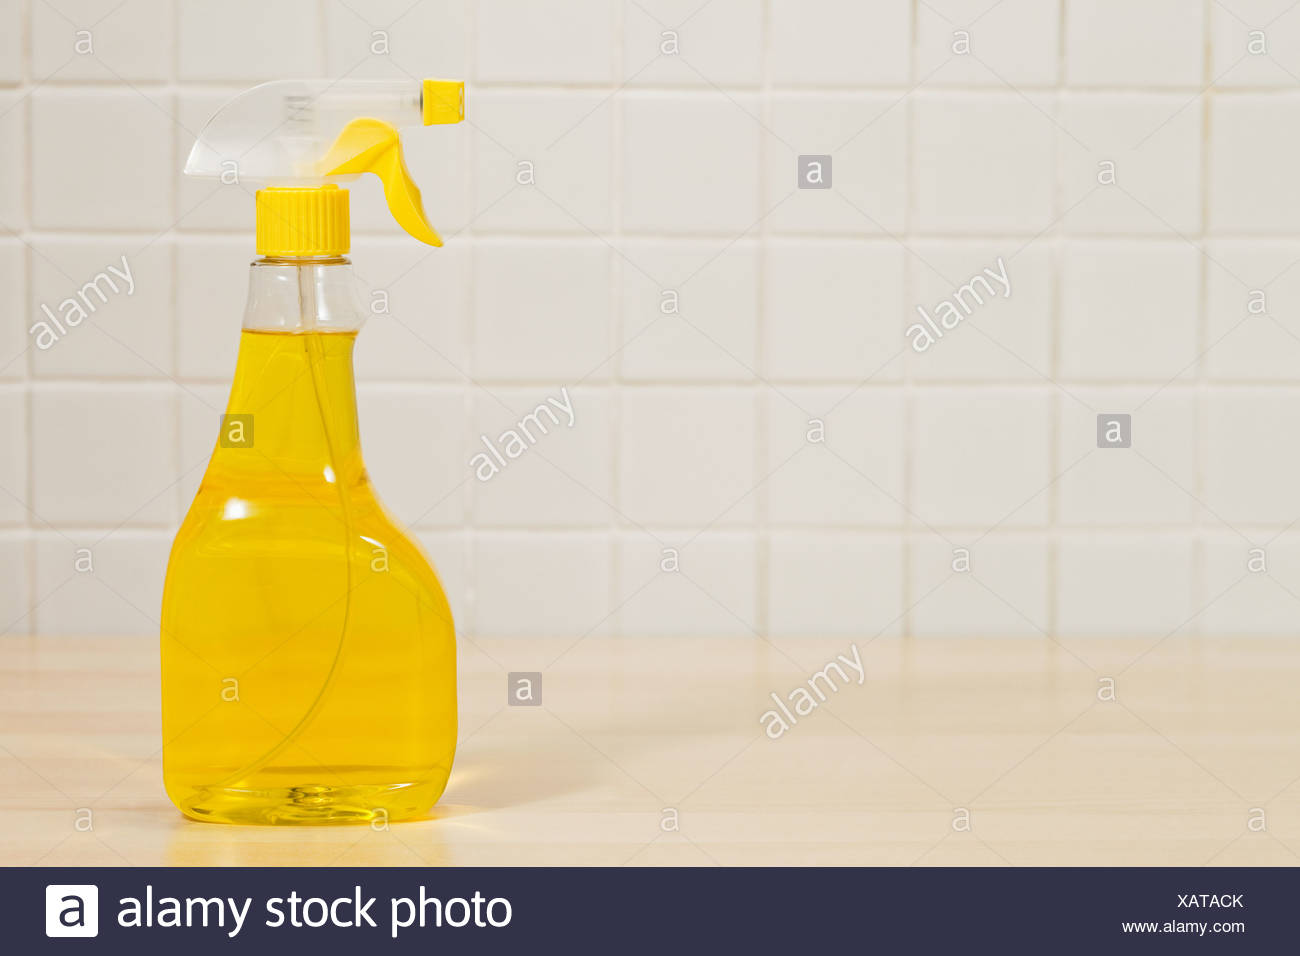 Bottle of yellow cleaning fluid - Stock Image